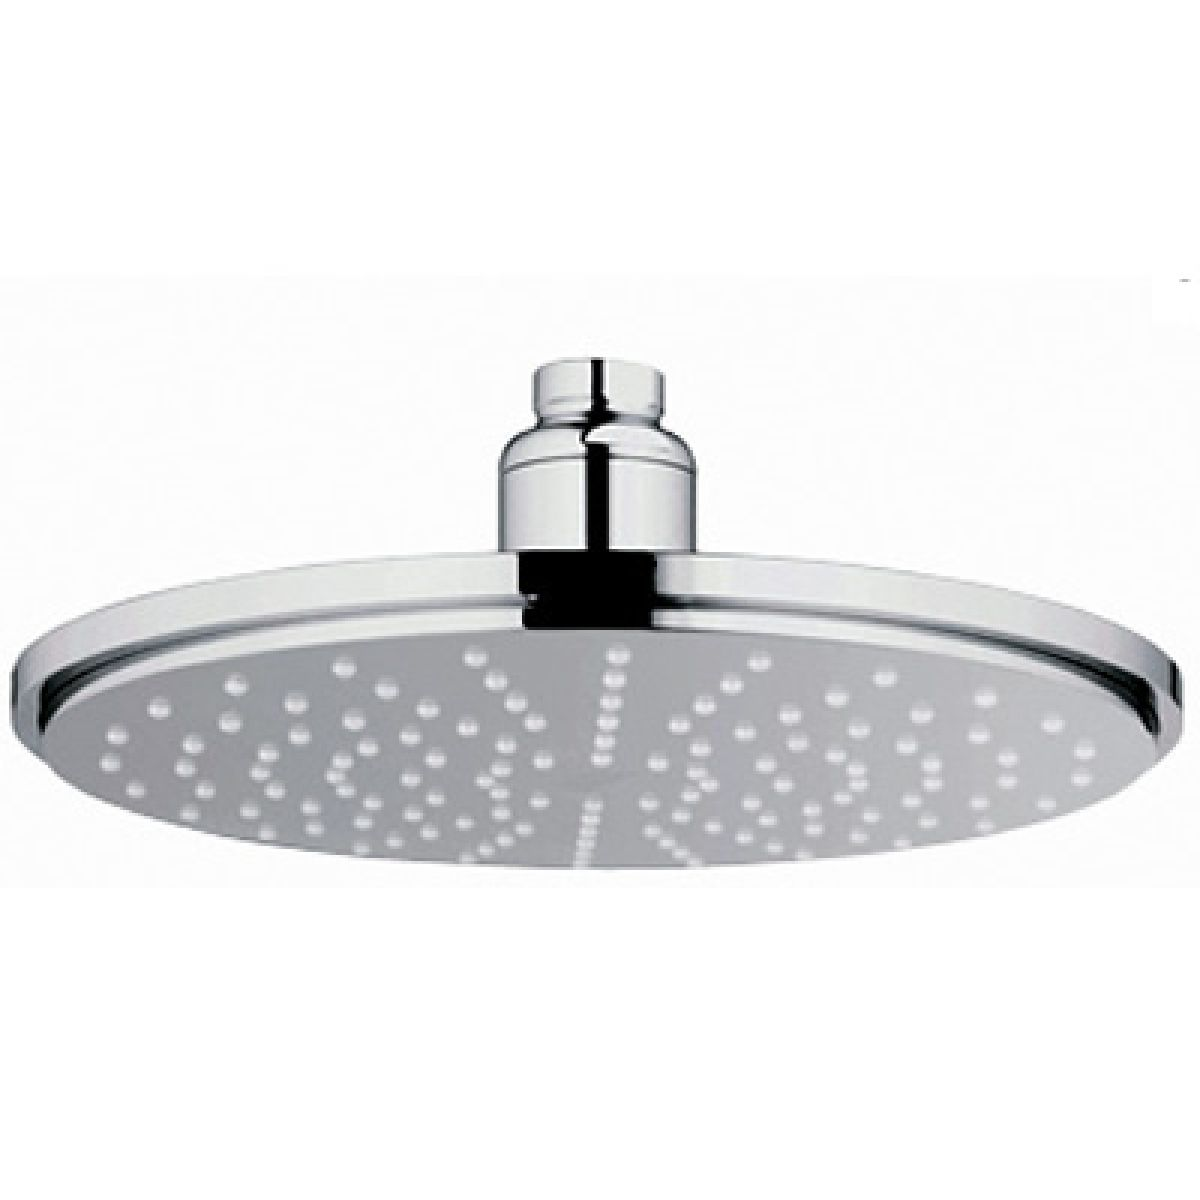 grohe rainshower 210mm modern shower head uk bathrooms. Black Bedroom Furniture Sets. Home Design Ideas